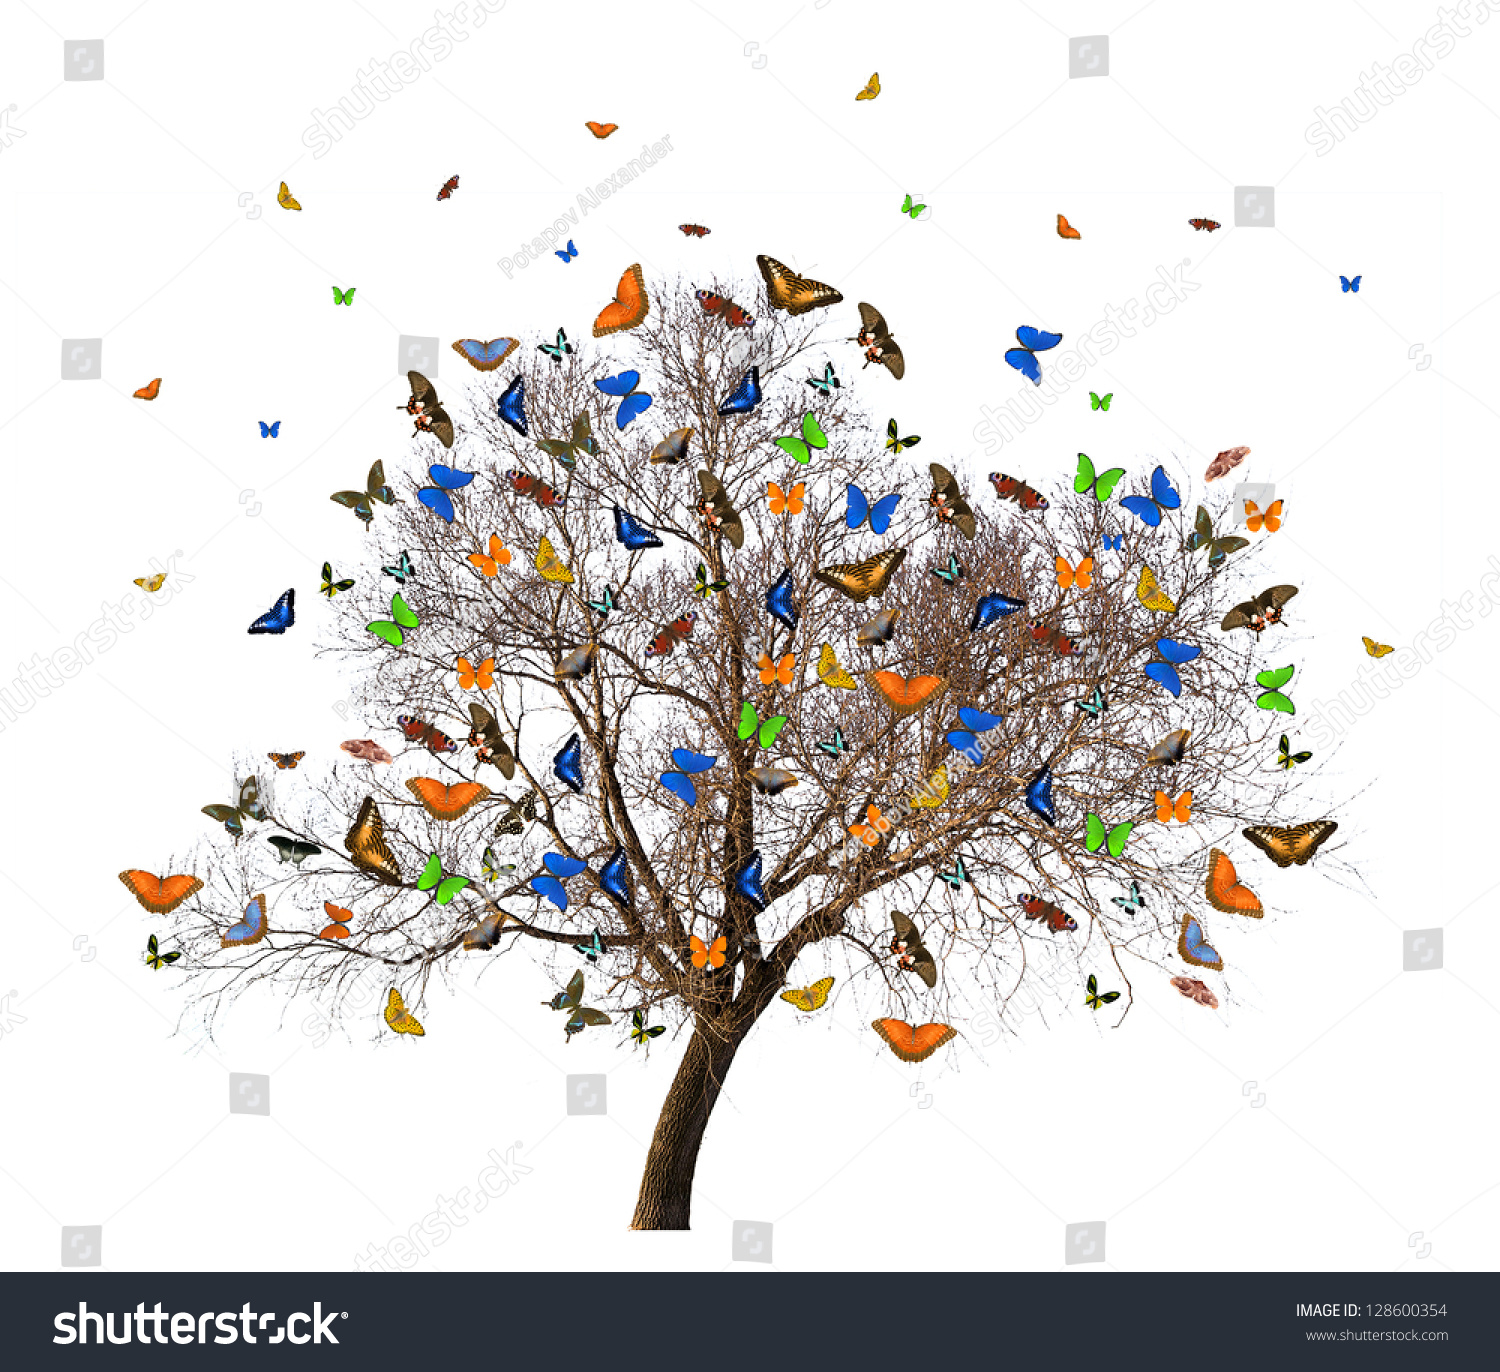 Butterflies And Tree Without Leaves Isolated On White